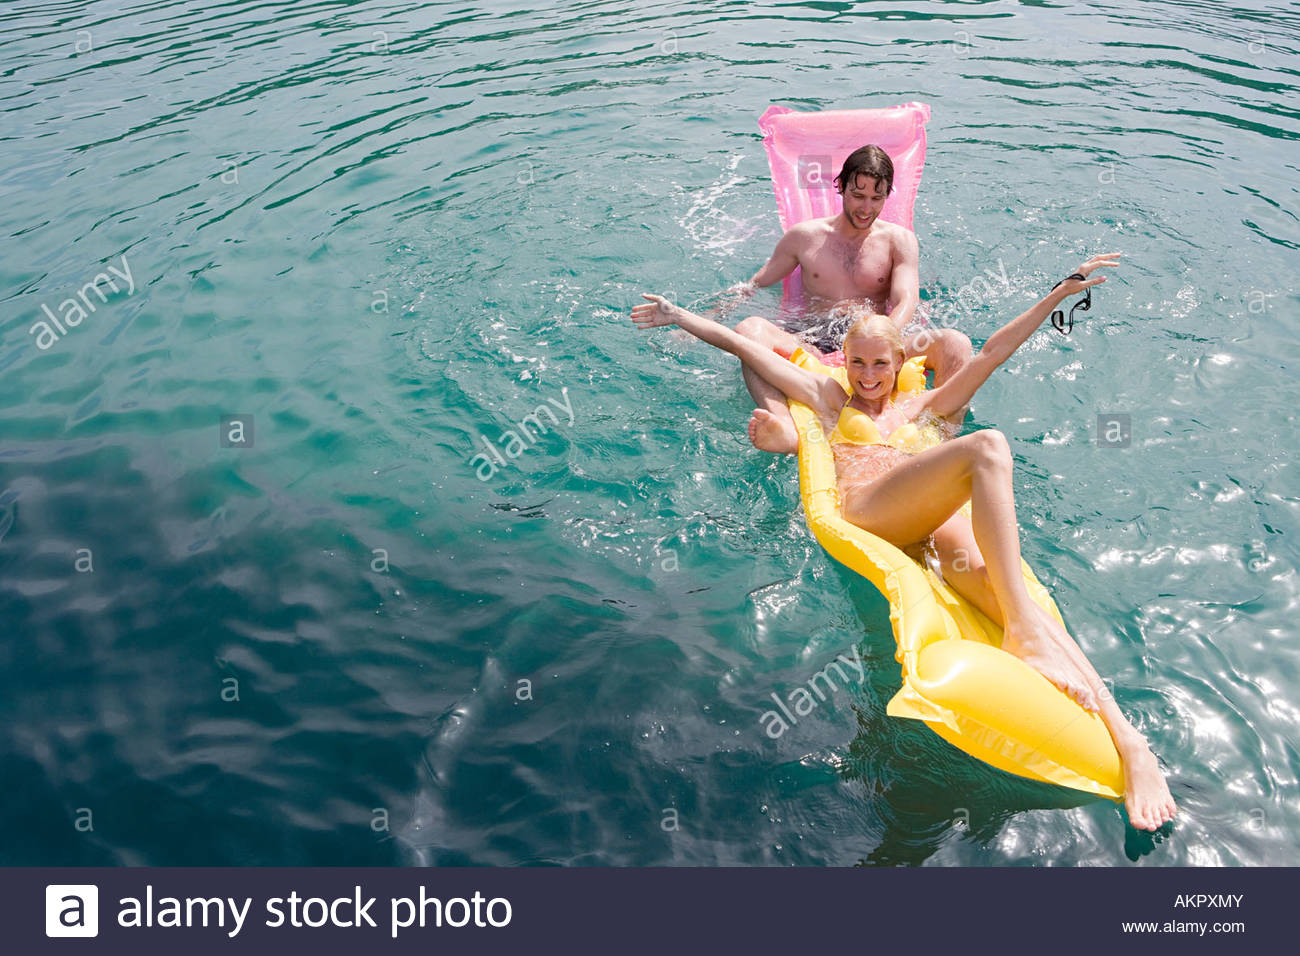 A couple fooling around on inflatable mattresses - Stock Image